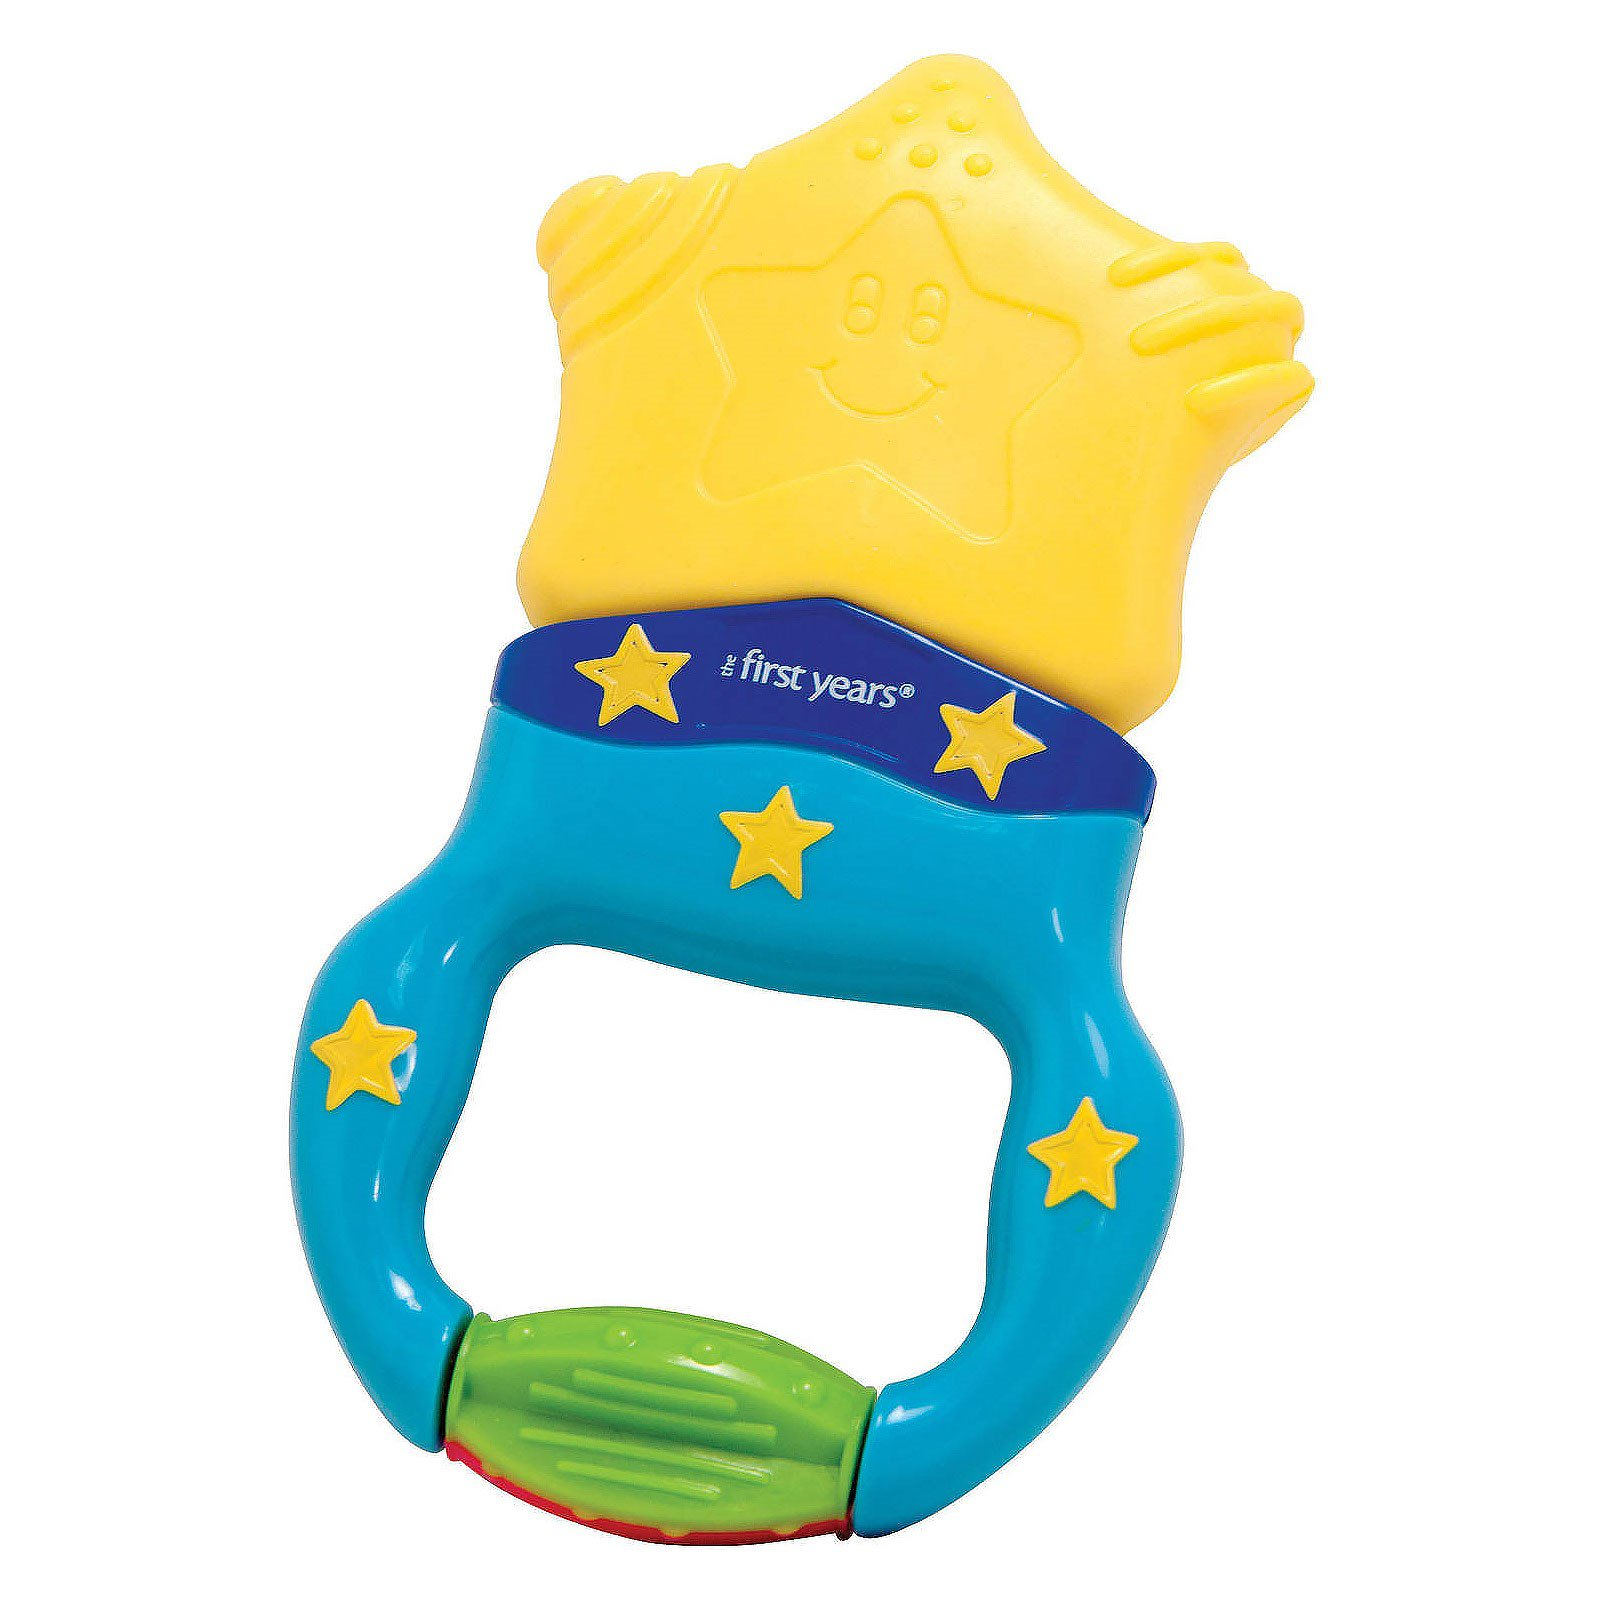 The First Years Massaging Teether 6 Months 1 Teether iHerb